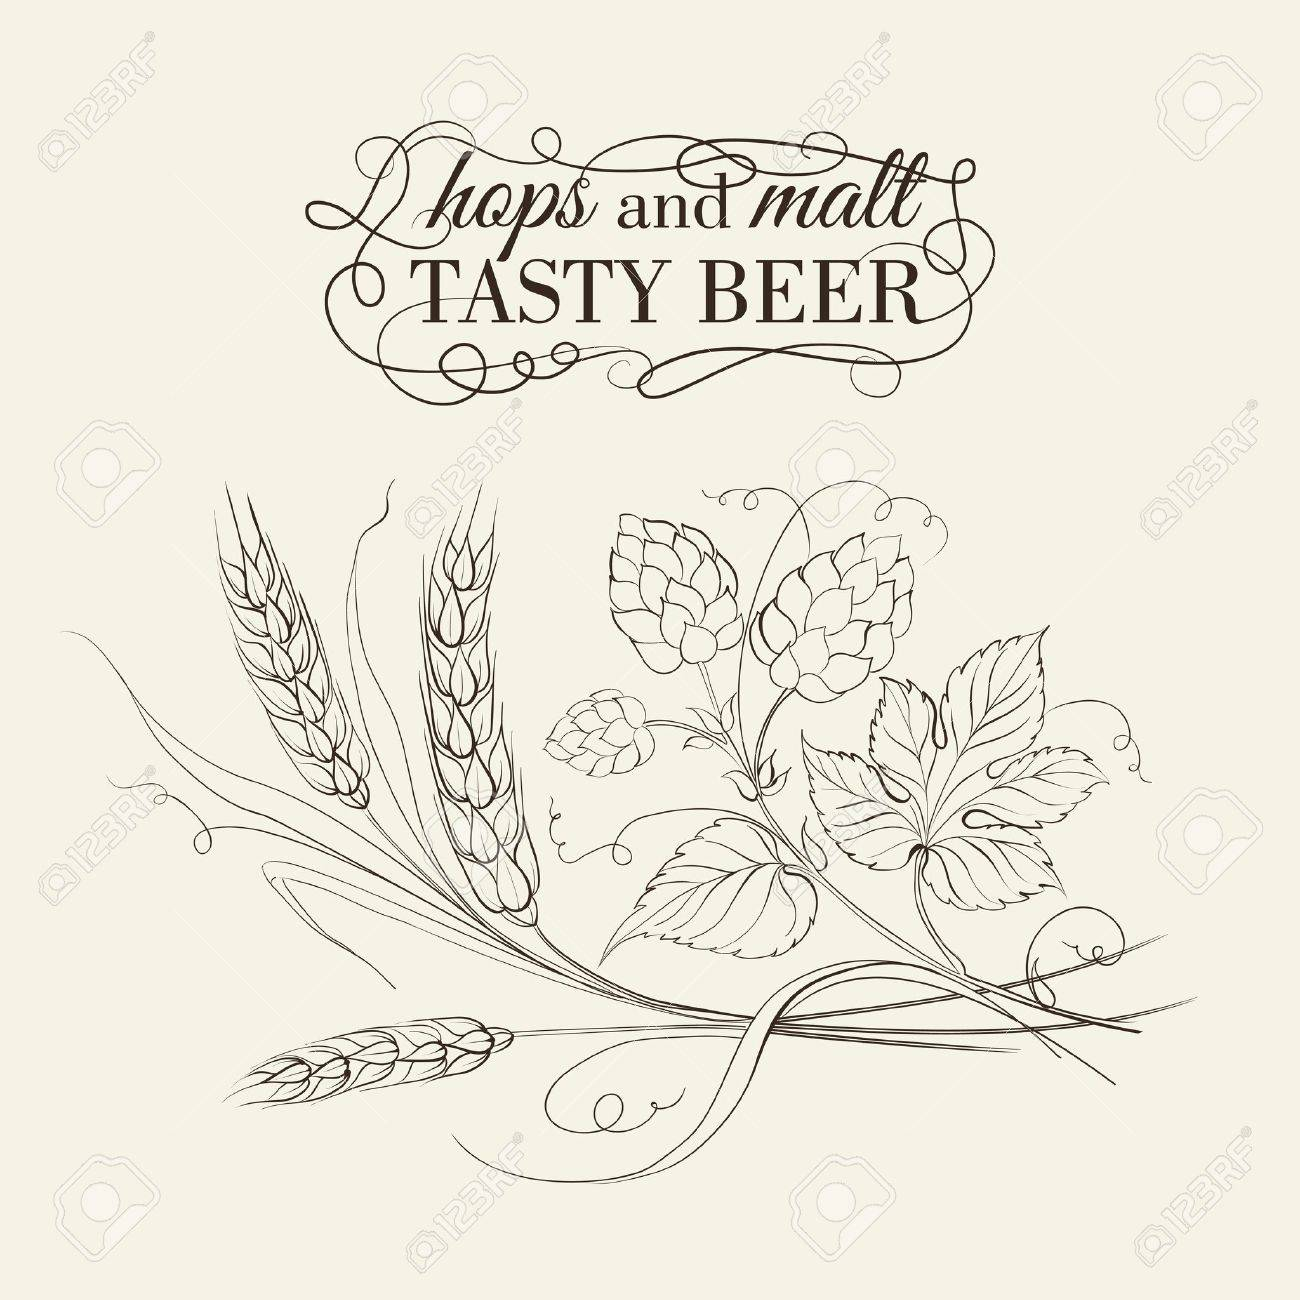 Wheat and hop on sepia. Vector illustration. Stock Vector - 21857898